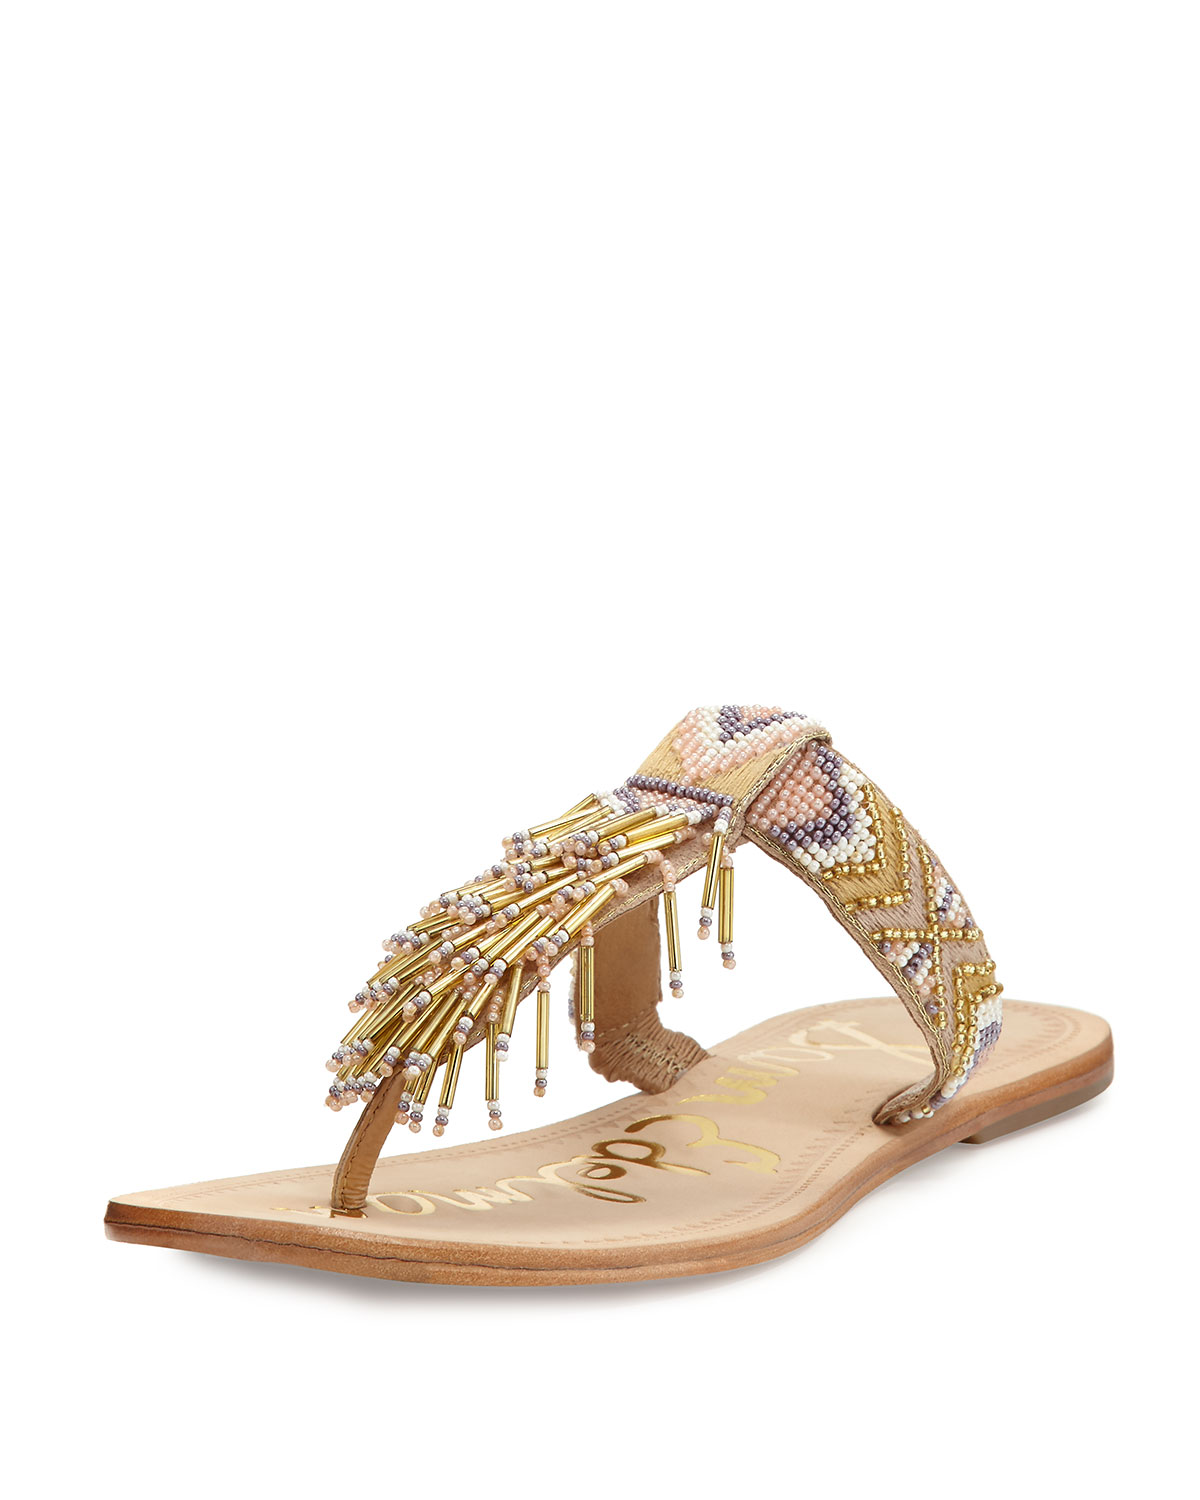 162224330ea20b Sam Edelman Anella Leather Beaded Flat Thong Sandals